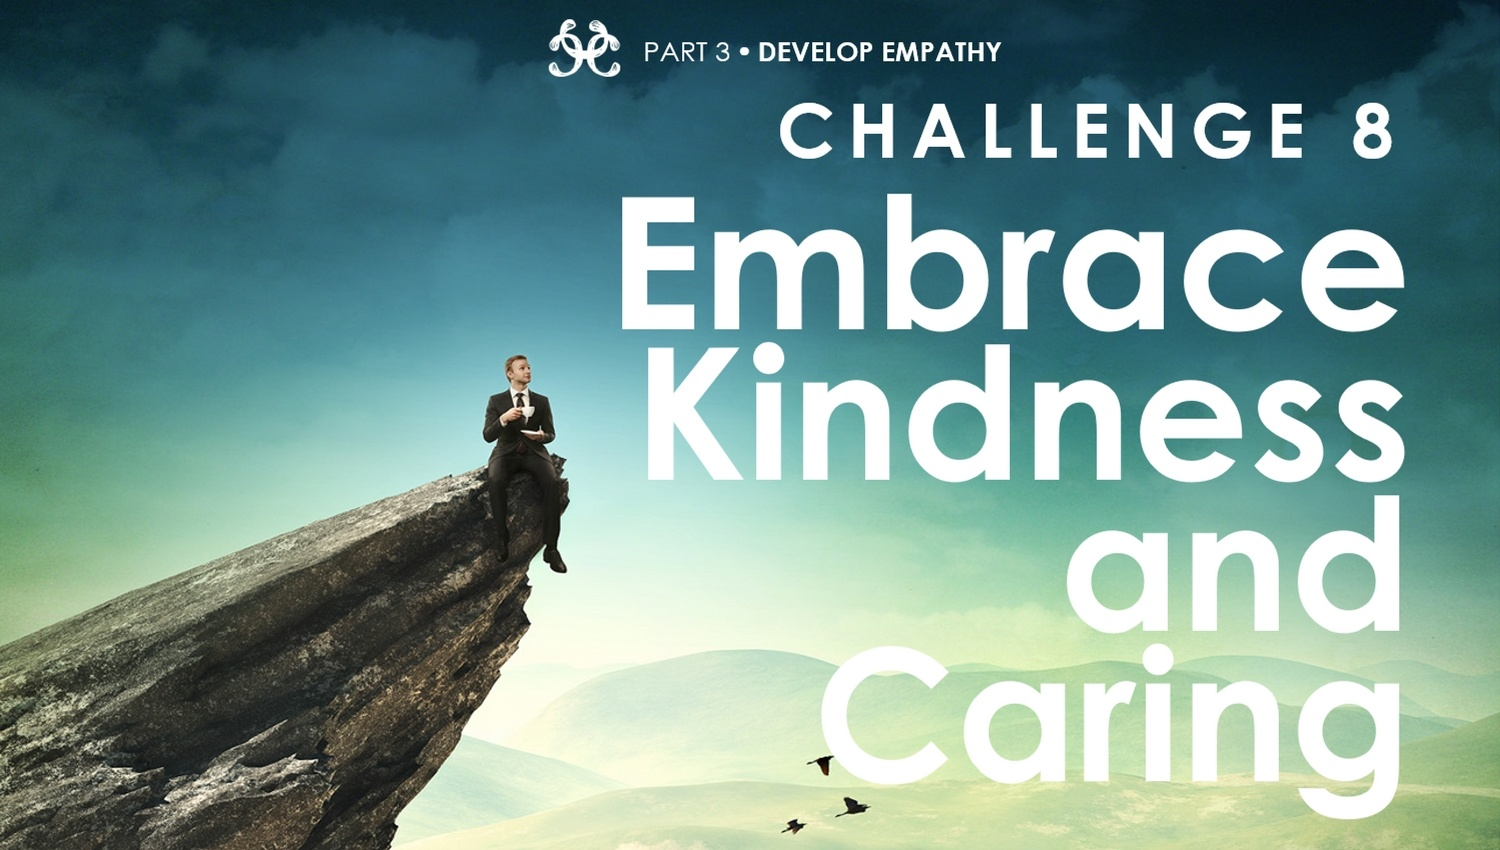 Courageous-Comm-Quest-Embrace-Kindness-and-Caring-Challenge-8.jpg